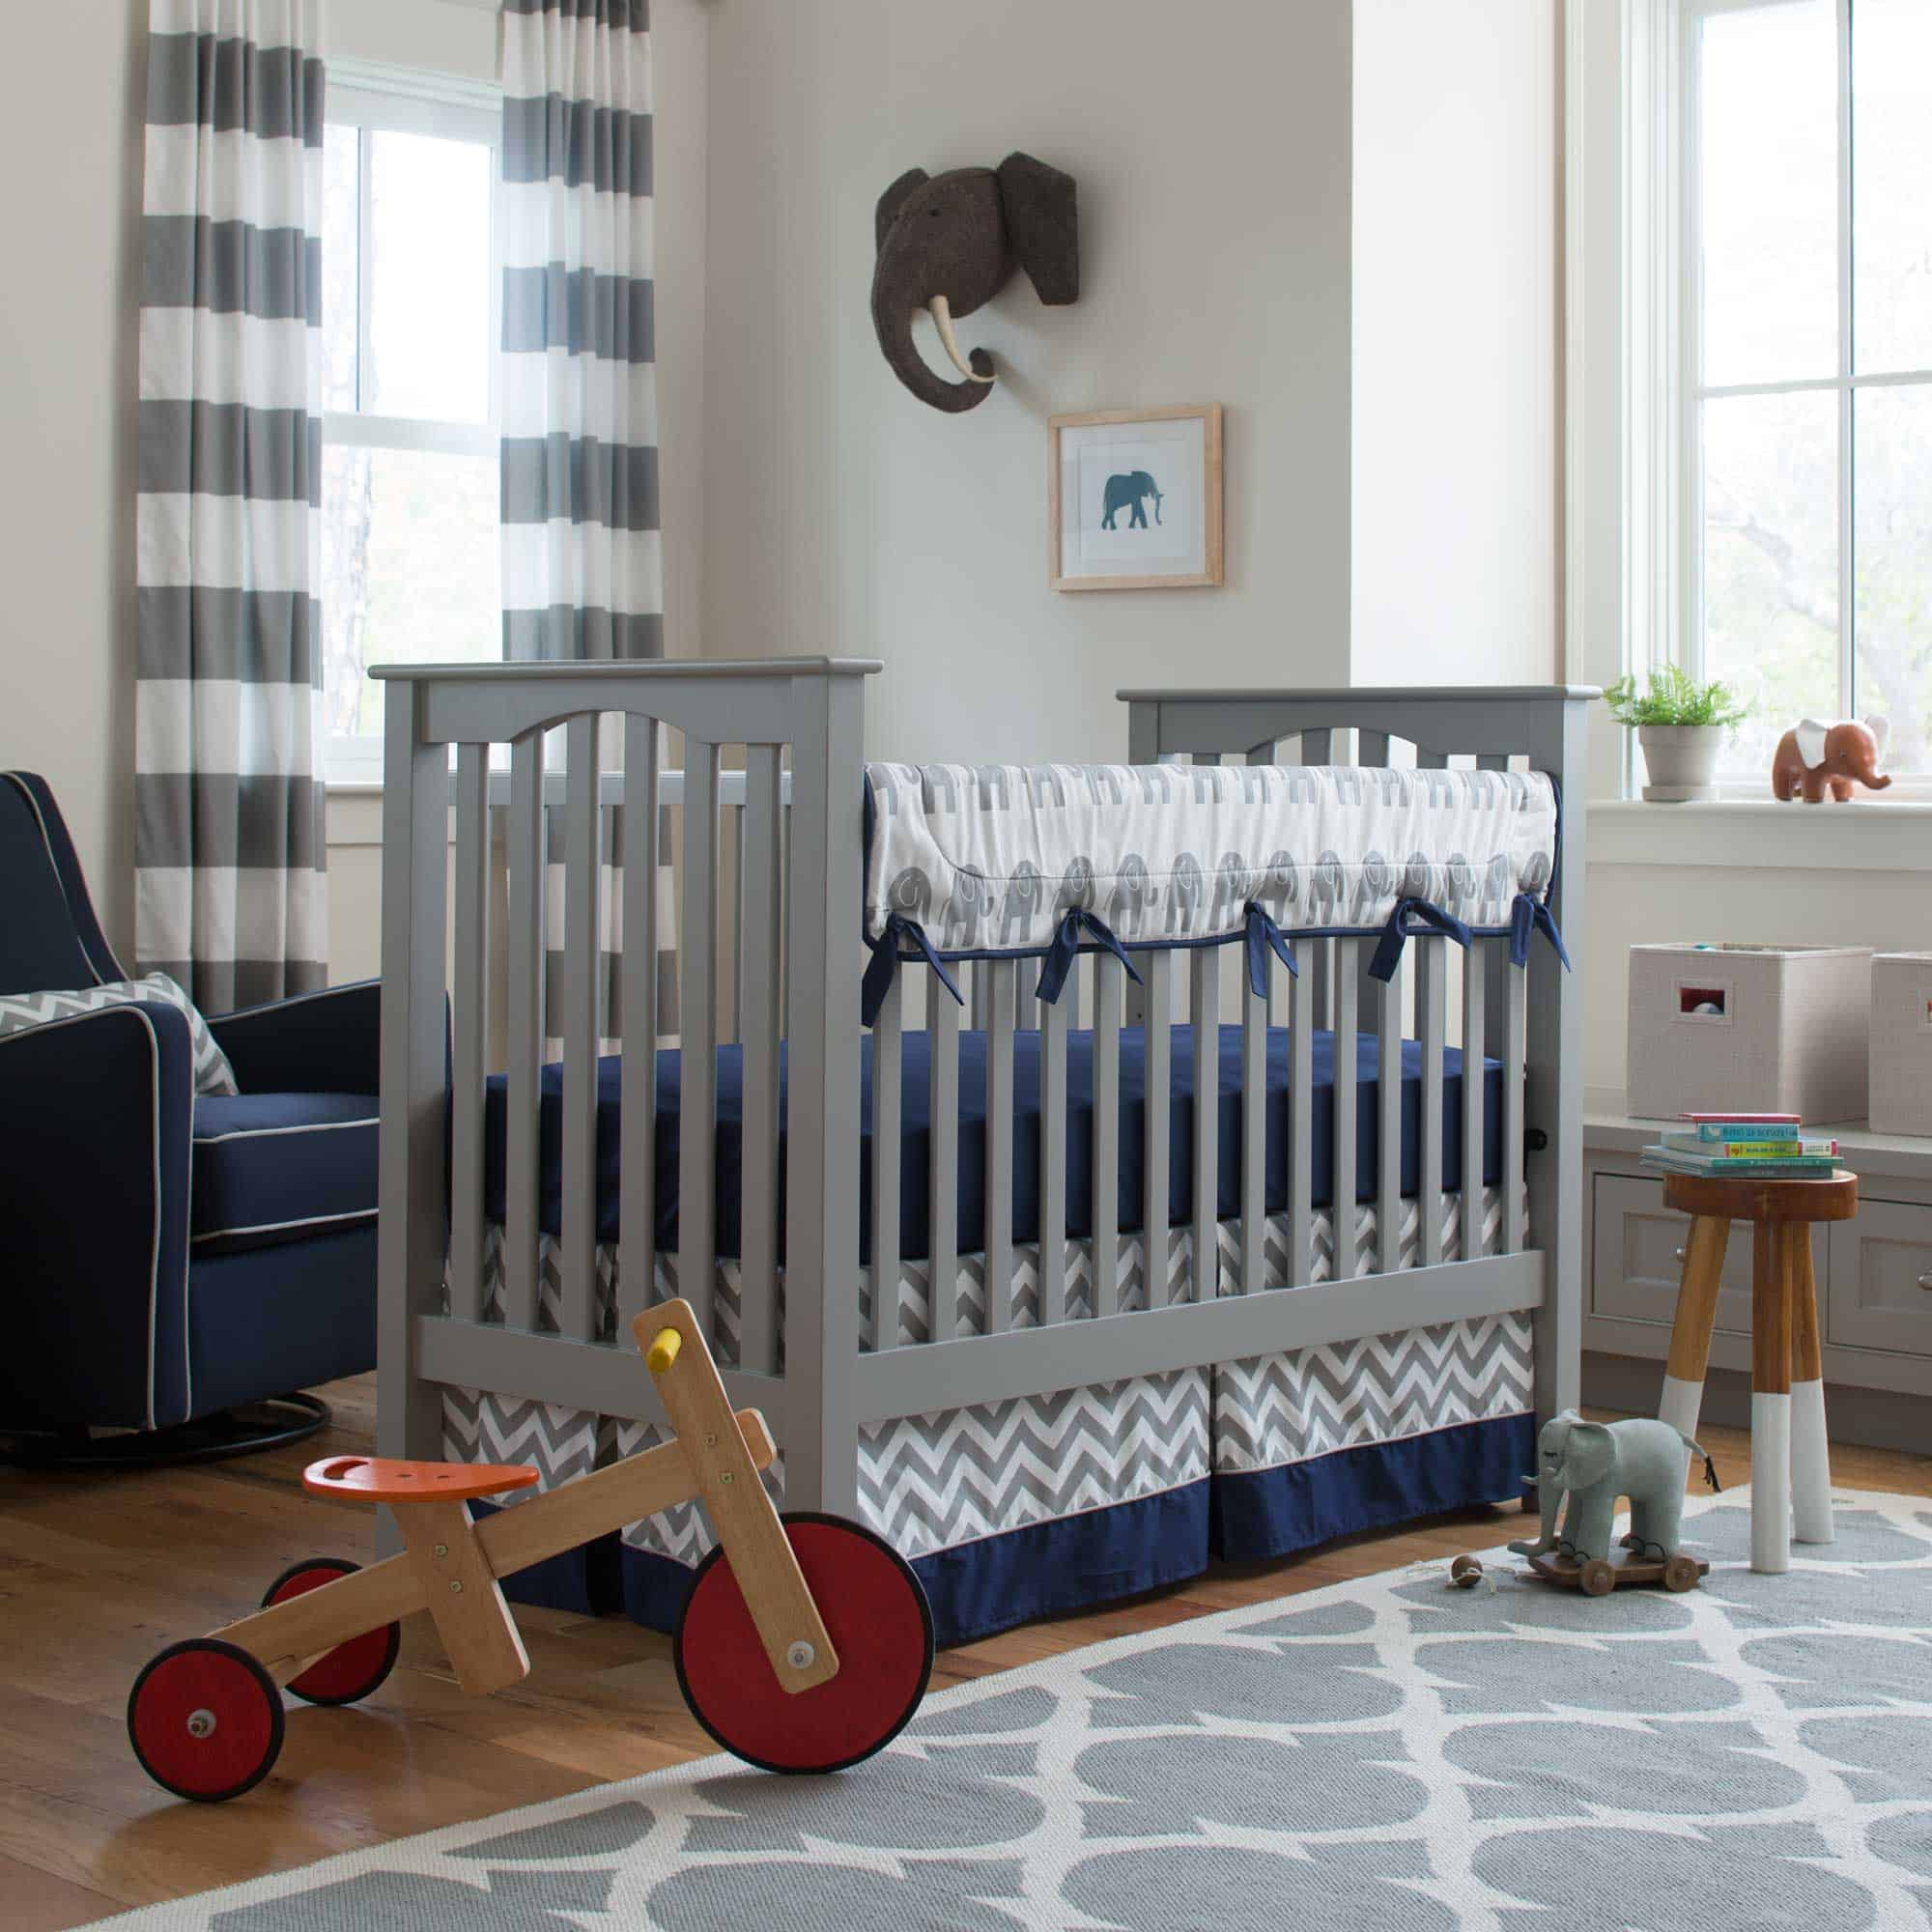 Baby cribs bedding for boys - Baby Cribs Bedding For Boys 62